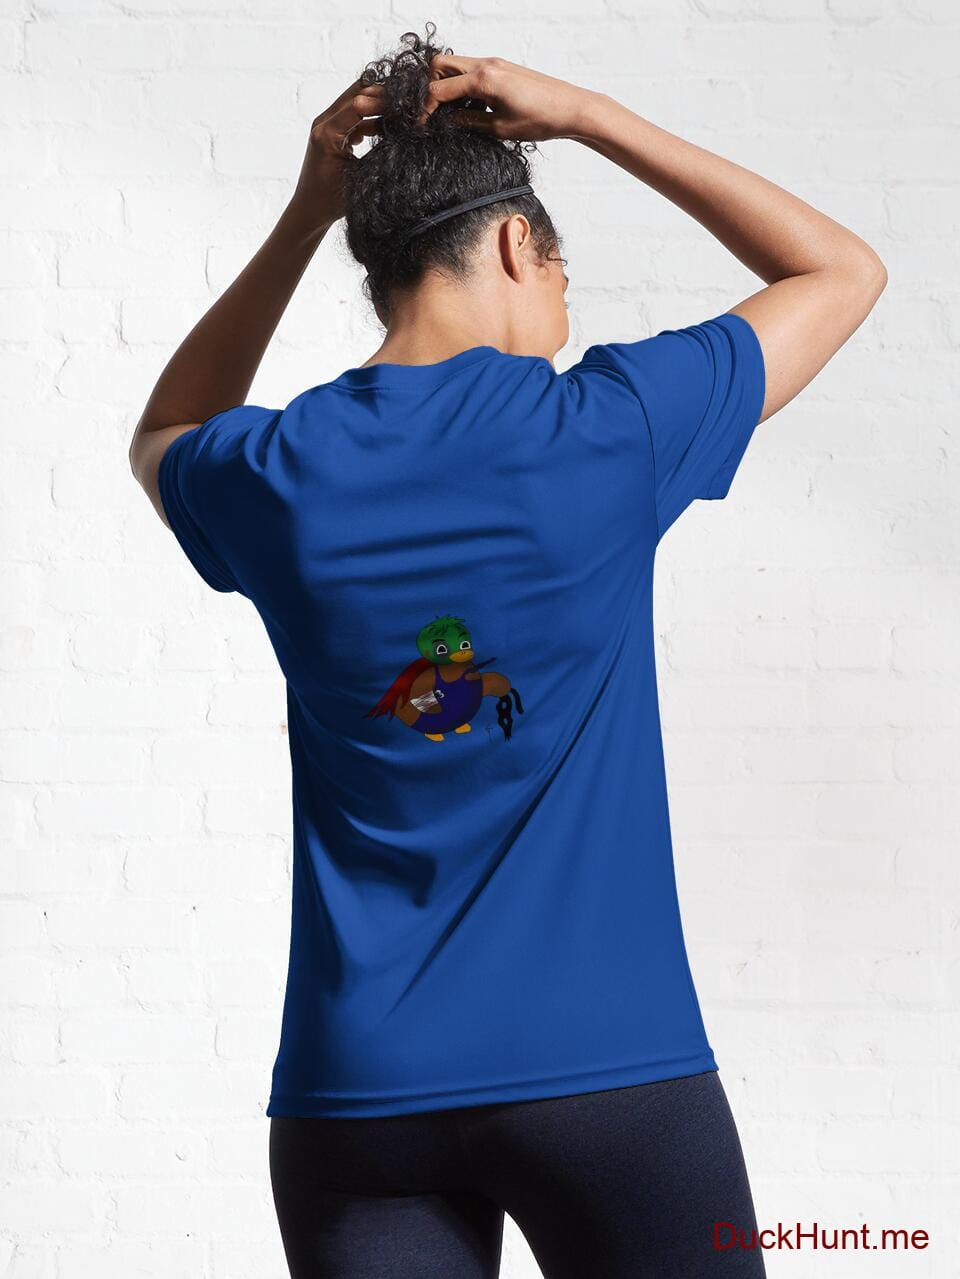 Dead DuckHunt Boss (smokeless) Royal Blue Active T-Shirt (Back printed) alternative image 5